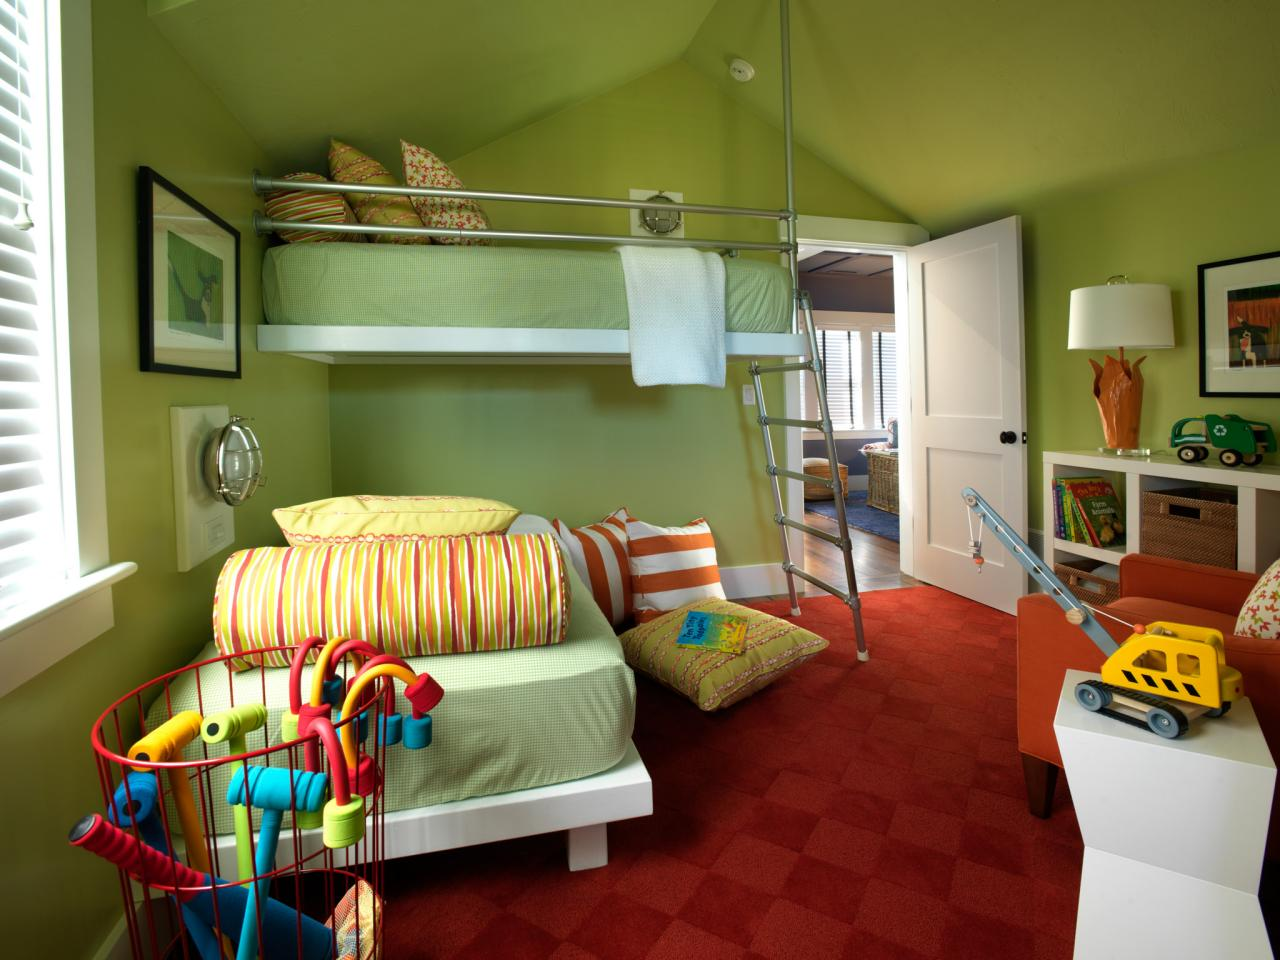 20 Bedroom Color Ideas to Make Your Room Awesome - Houseminds on Bed Ideas For Small Rooms  id=12315